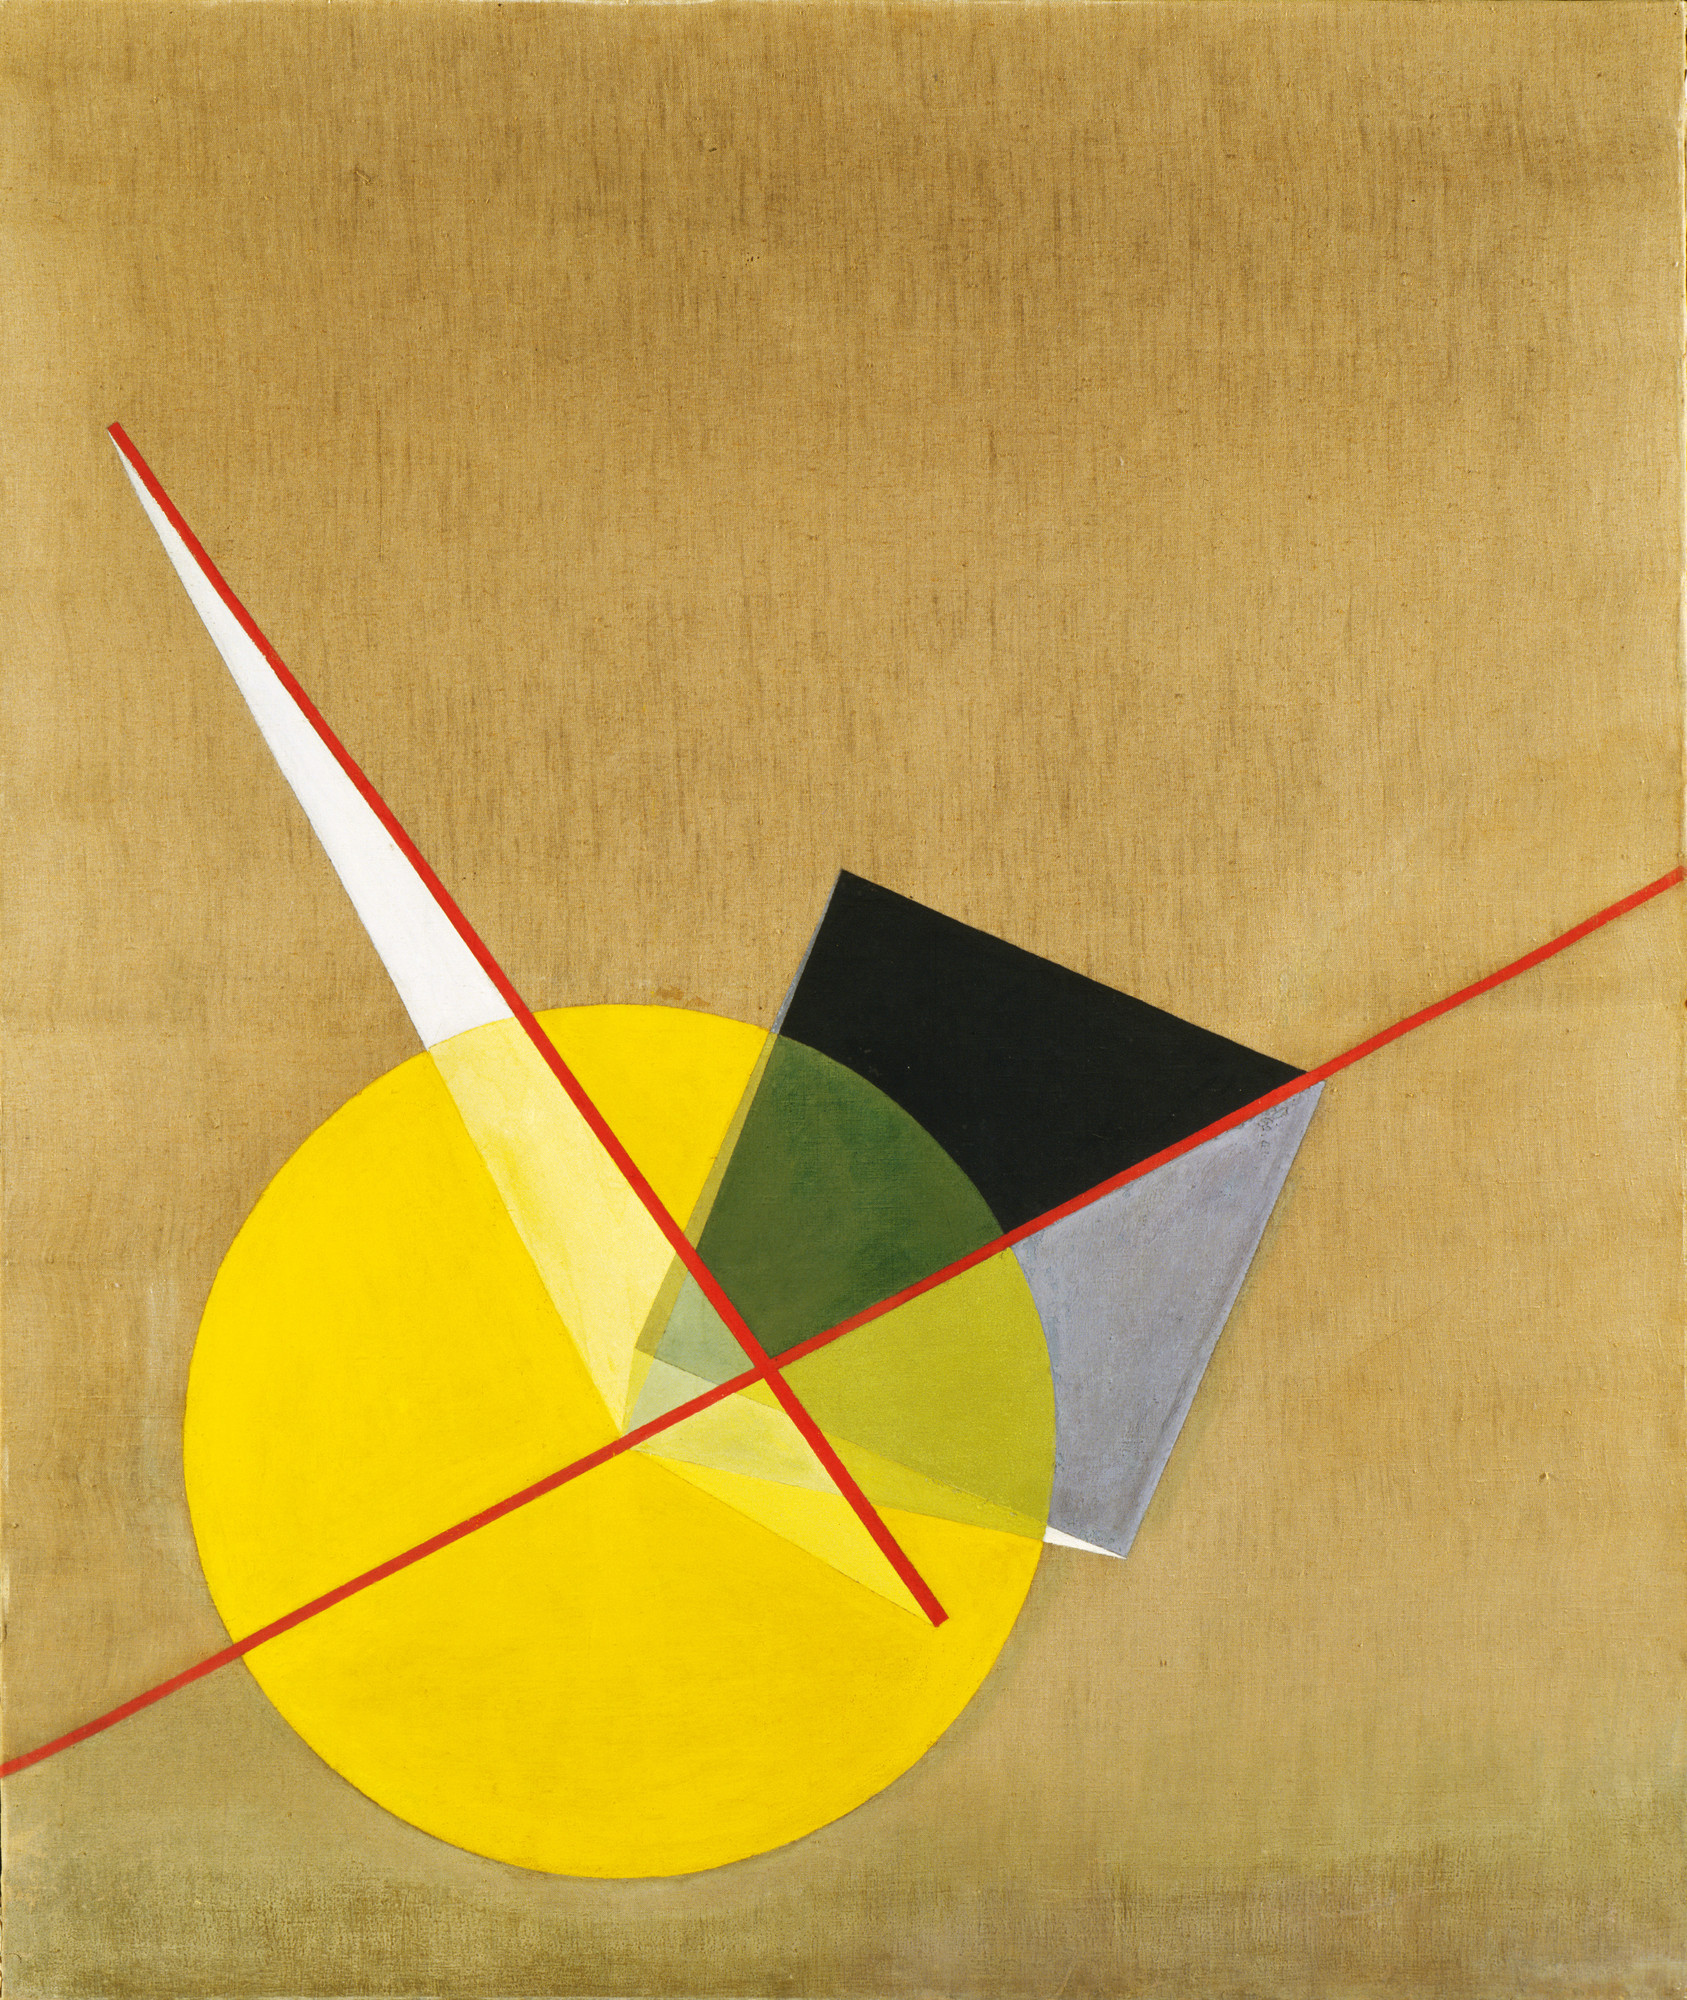 László Moholy-Nagy. Yellow Circle. 1921. Oil on canvas. 53 1⁄8 × 45″ (135 × 114.3 cm). The Riklis Collection of McCrory Corporation. © 2016 Artists Rights Society (ARS), New York / VG Bild-Kunst, Bonn